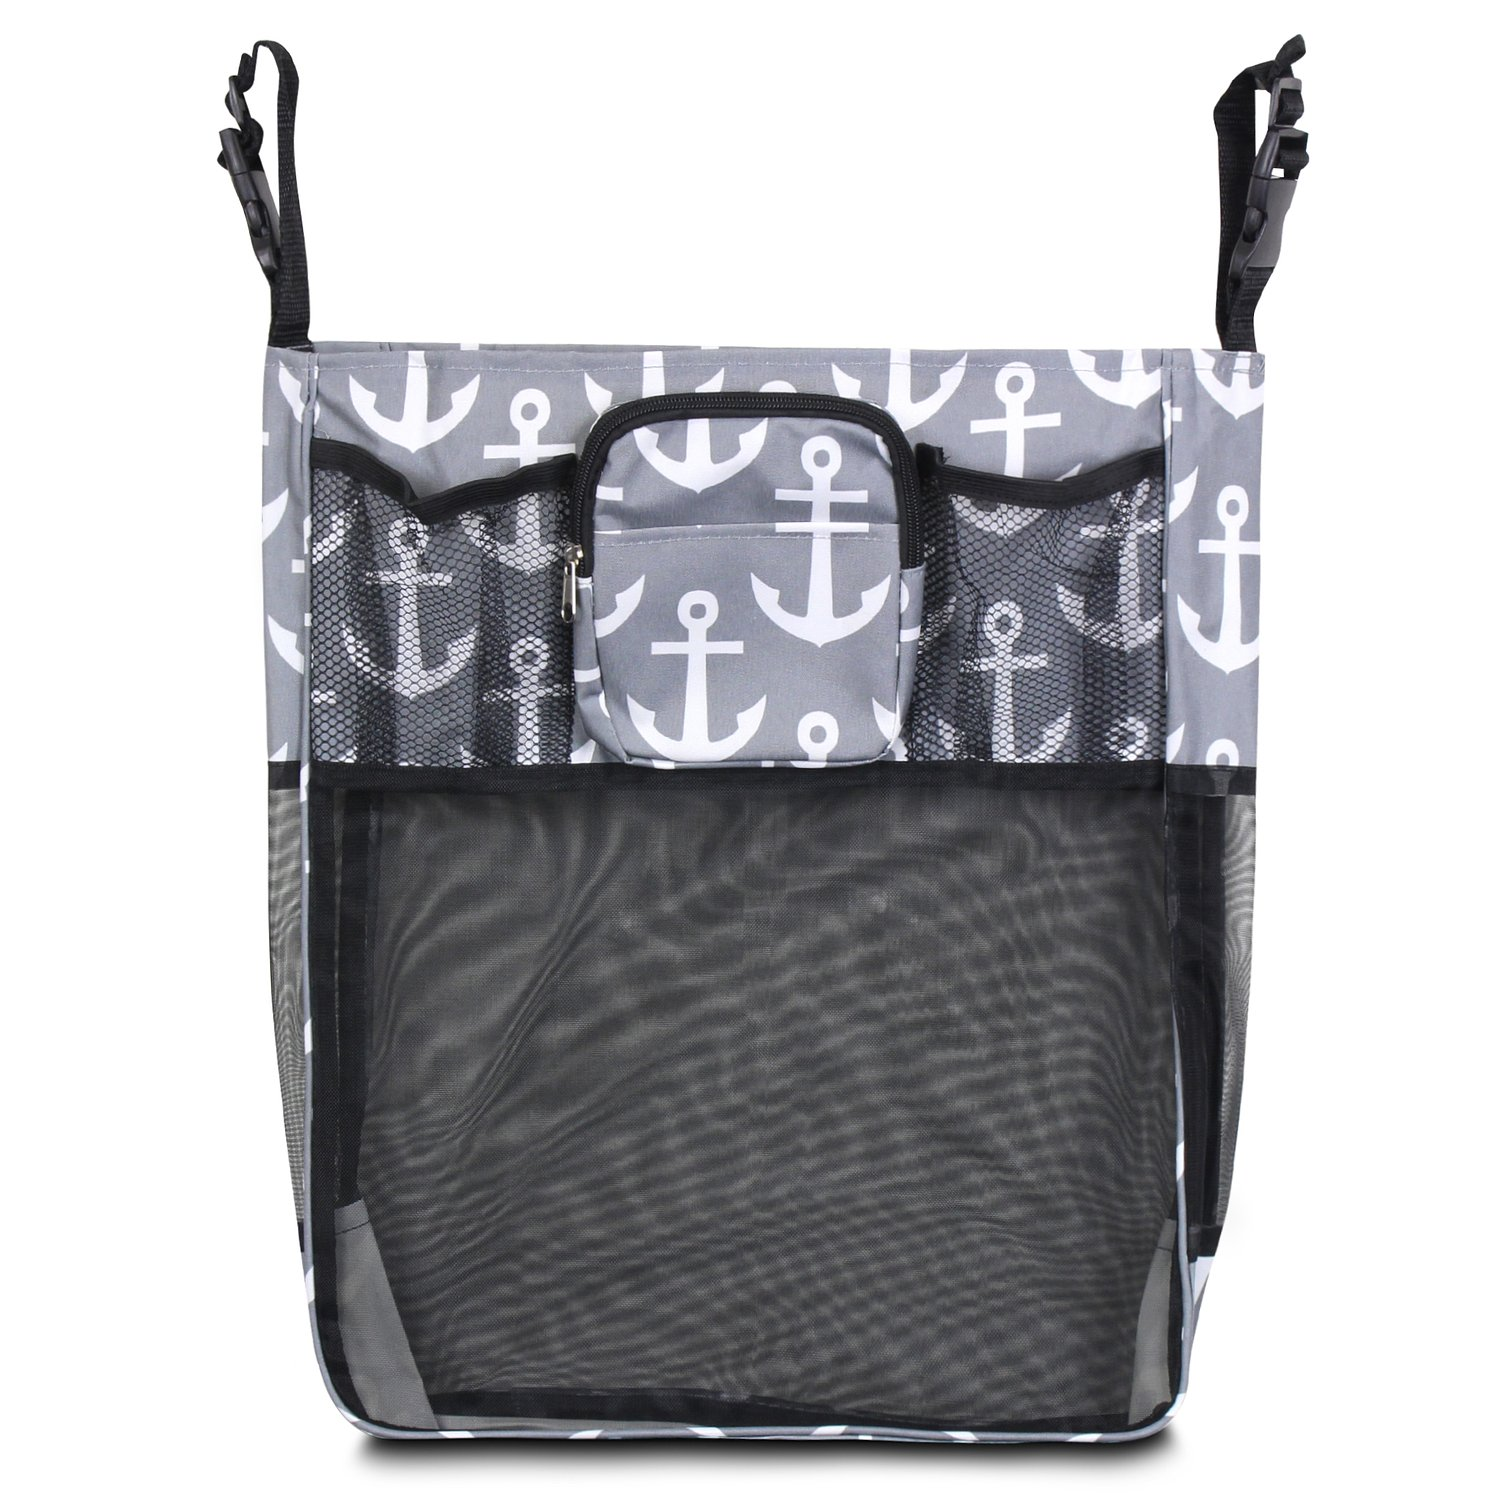 Zodaca Stroller Organizer Bag, Gray/Black Anchors